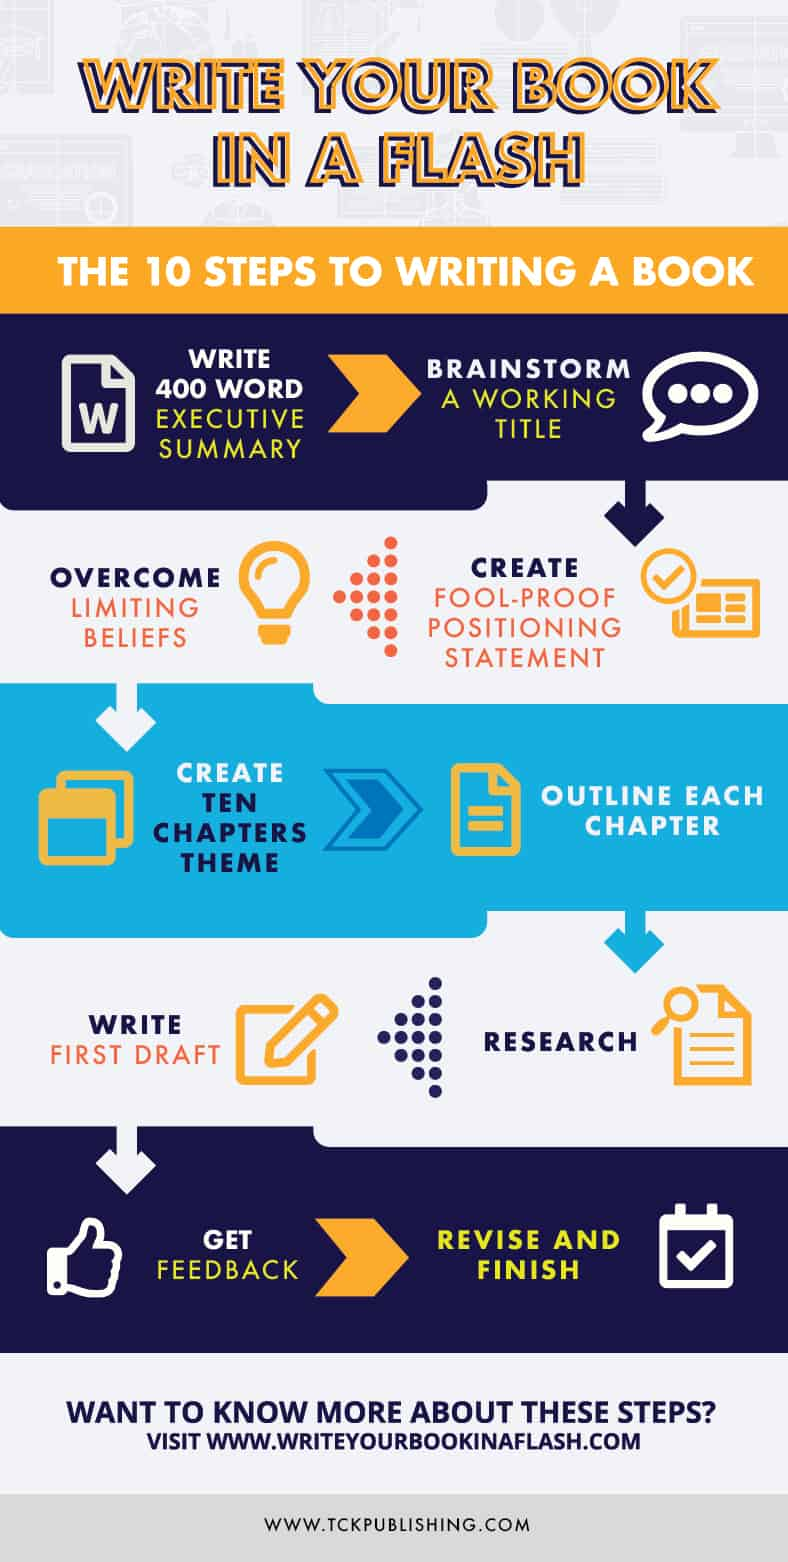 How to Write a Book Infographic image